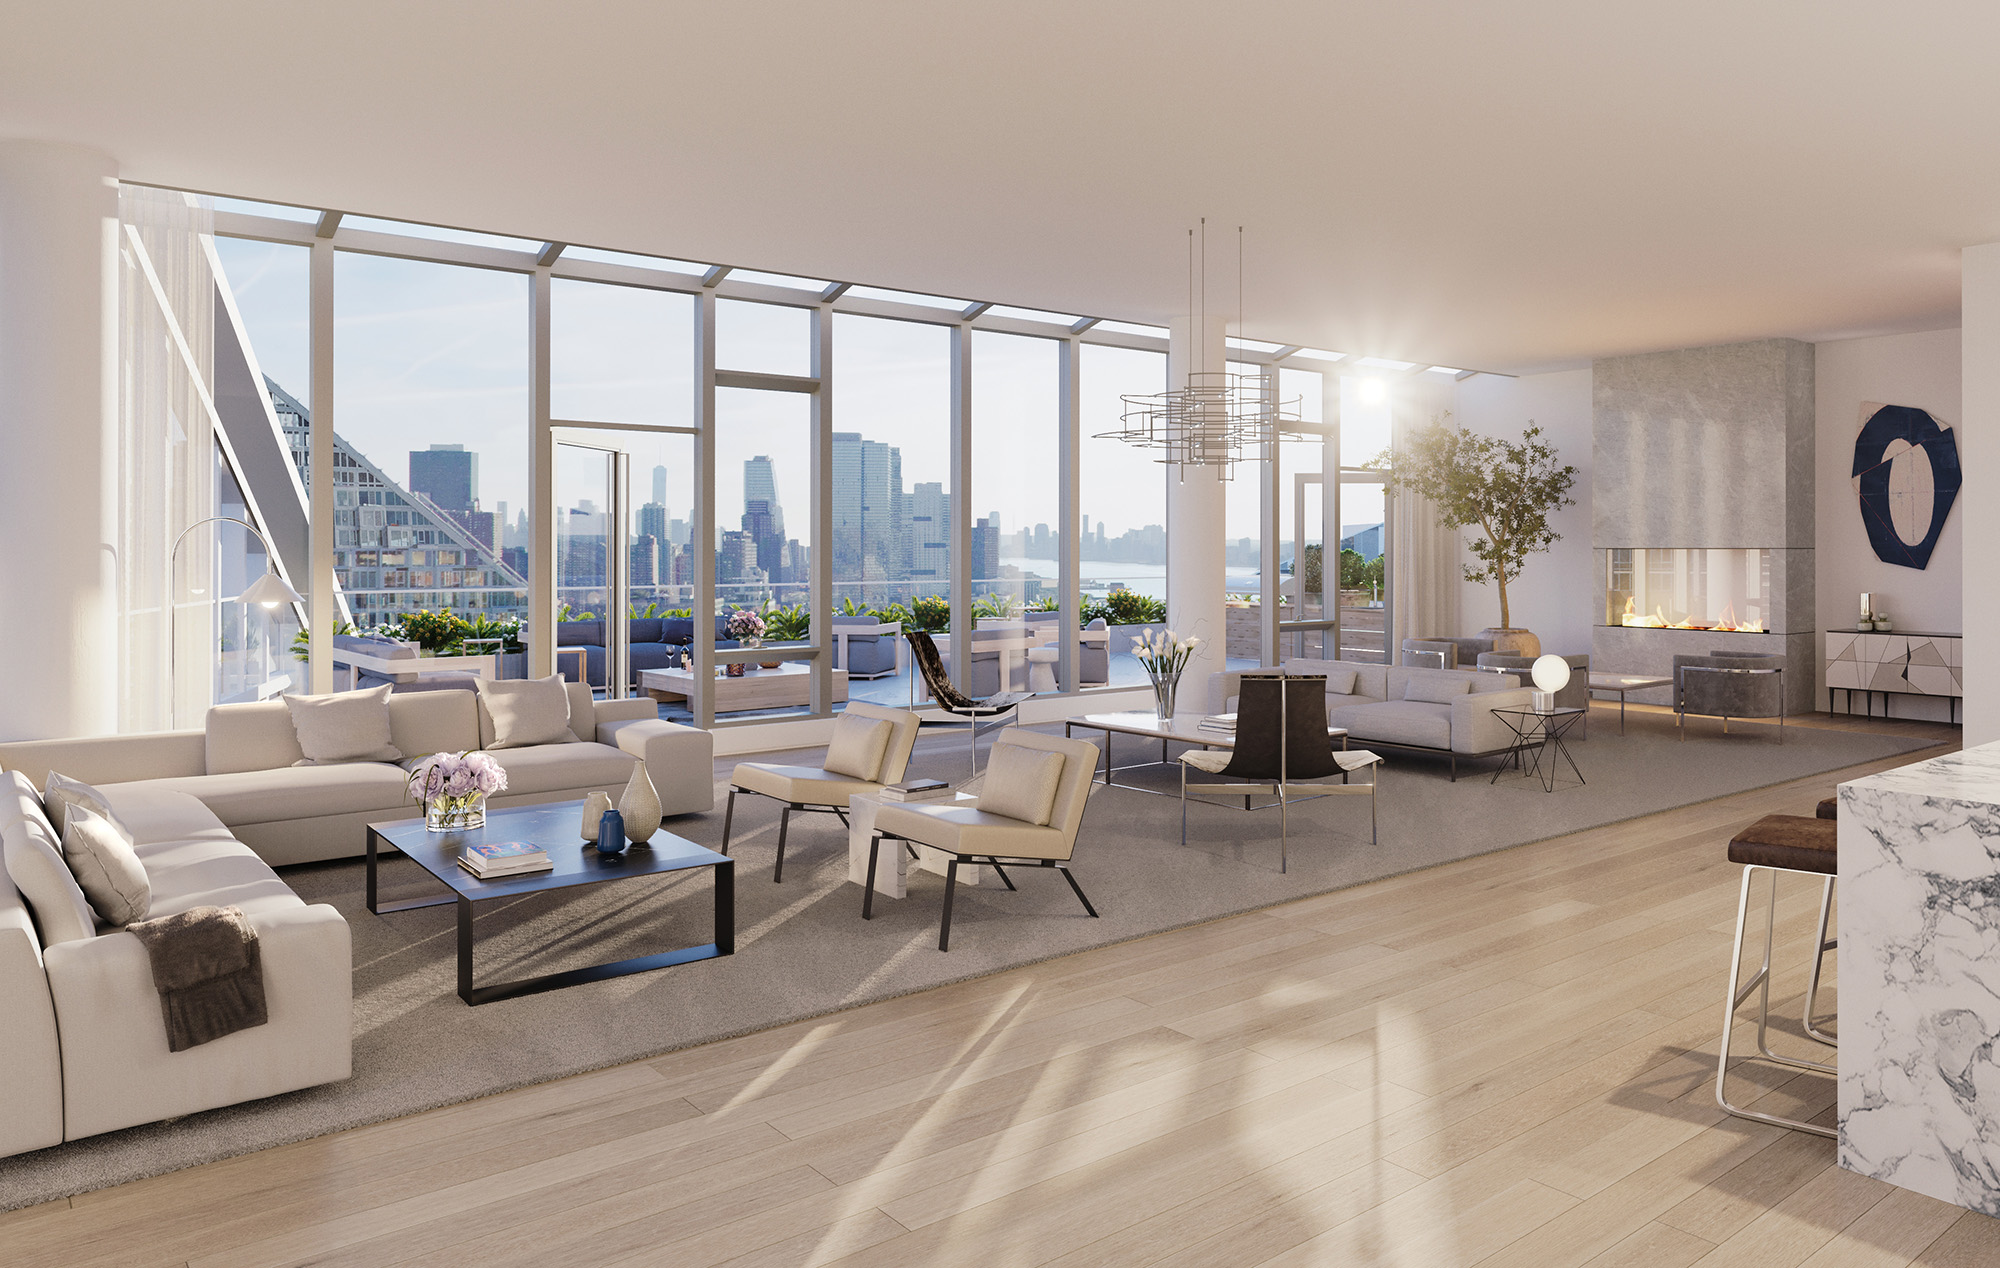 New York Skyline Views from Luxury Condo Penthouse Living Room